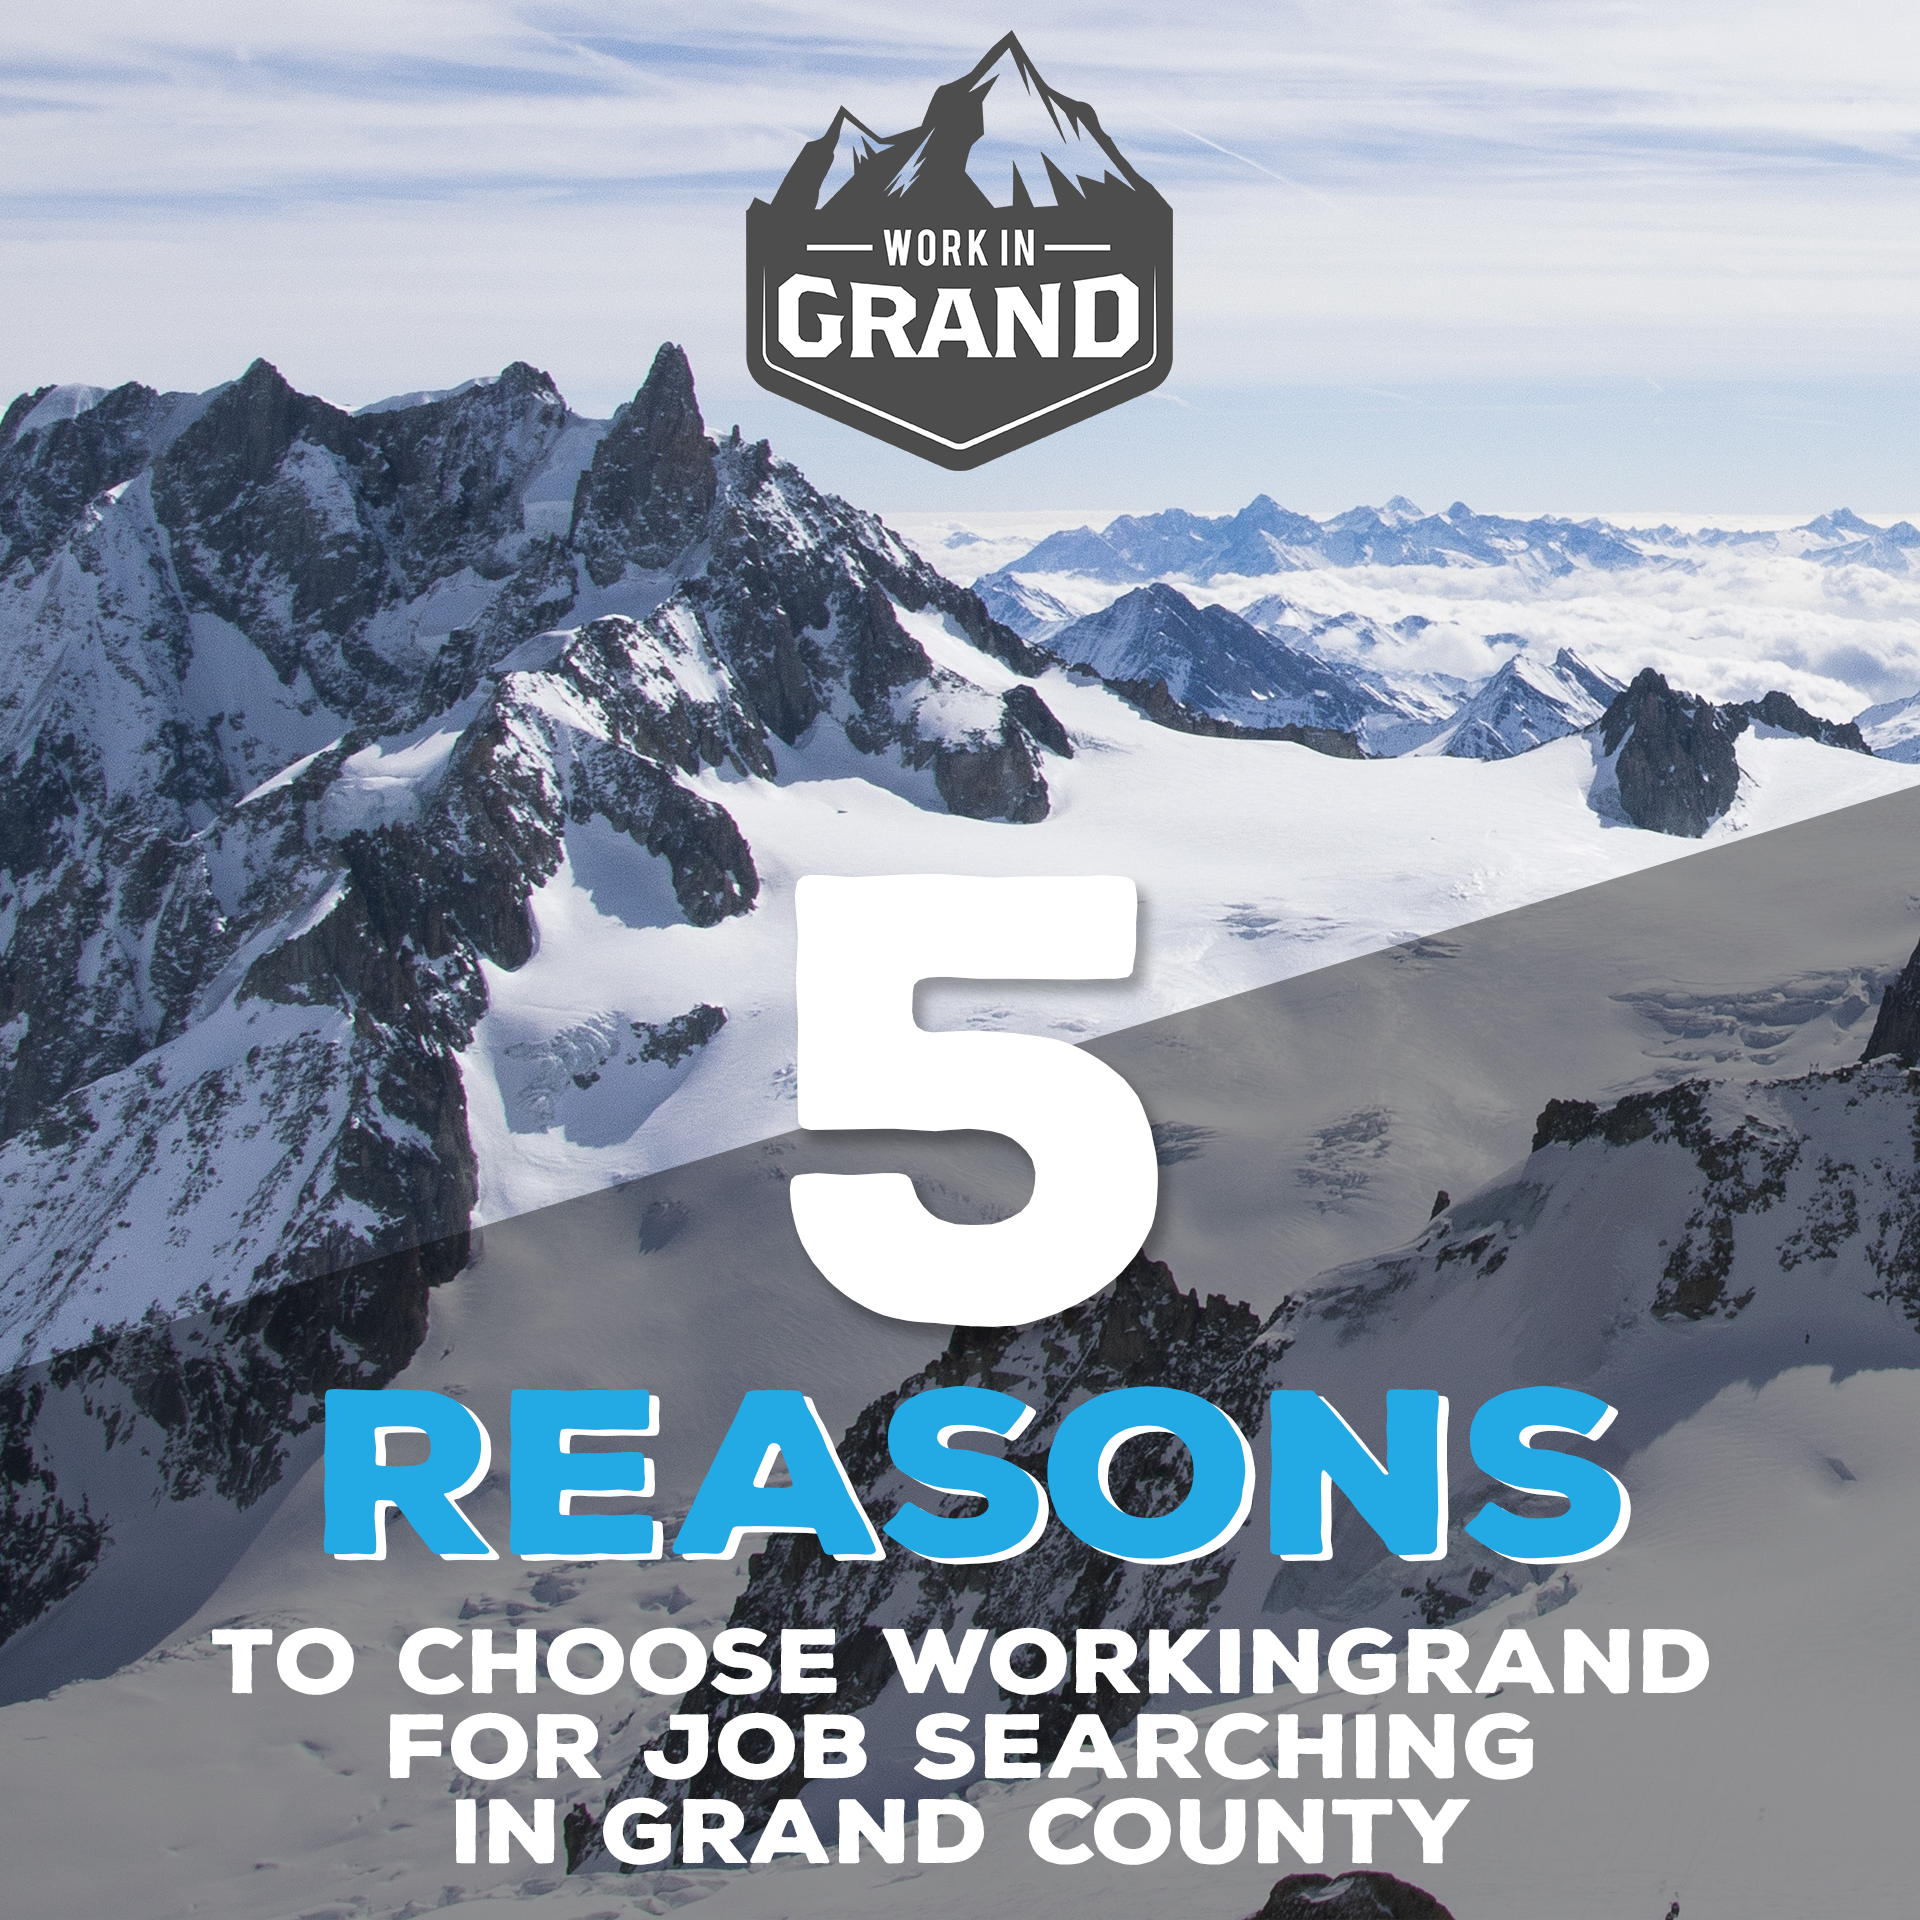 Five Reasons to Choose WorkInGrand for Job Searching in Grand County